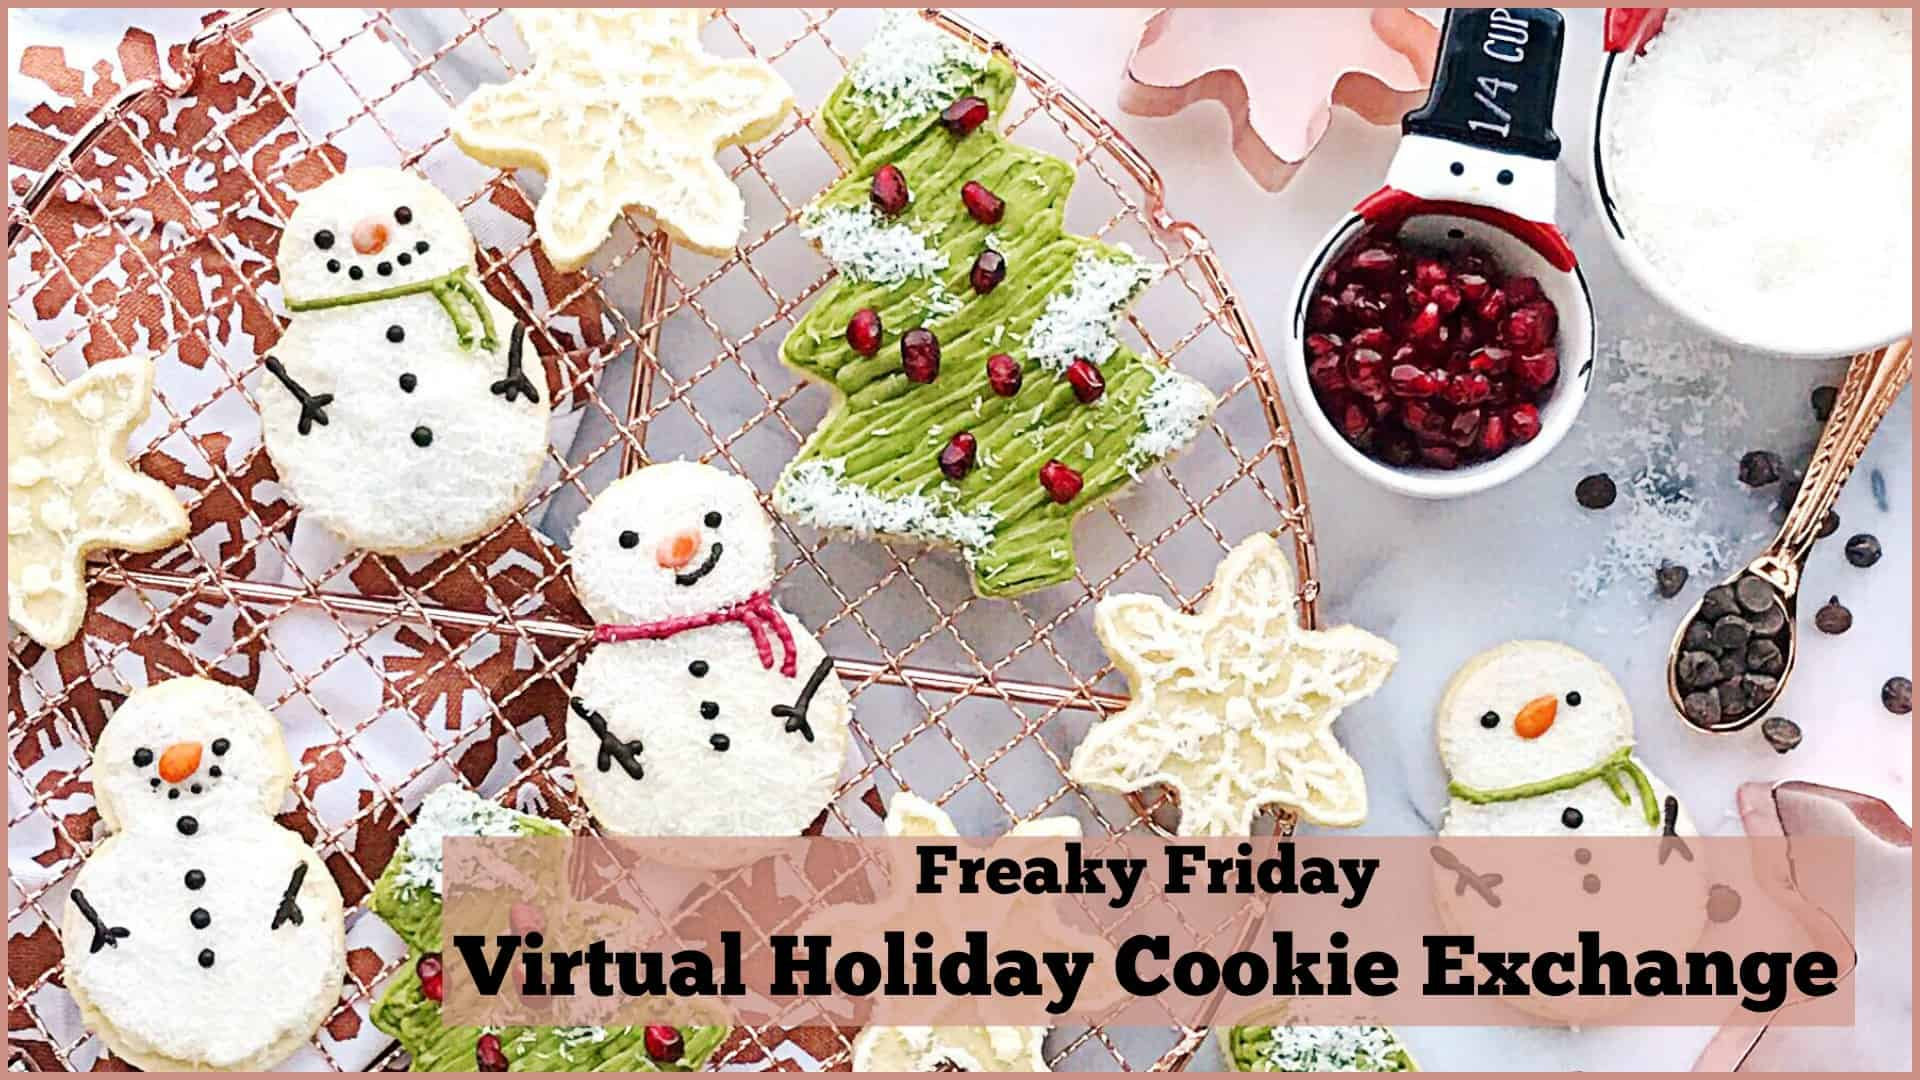 banner for the Freaky Friday Holiday Cookie Exchange event